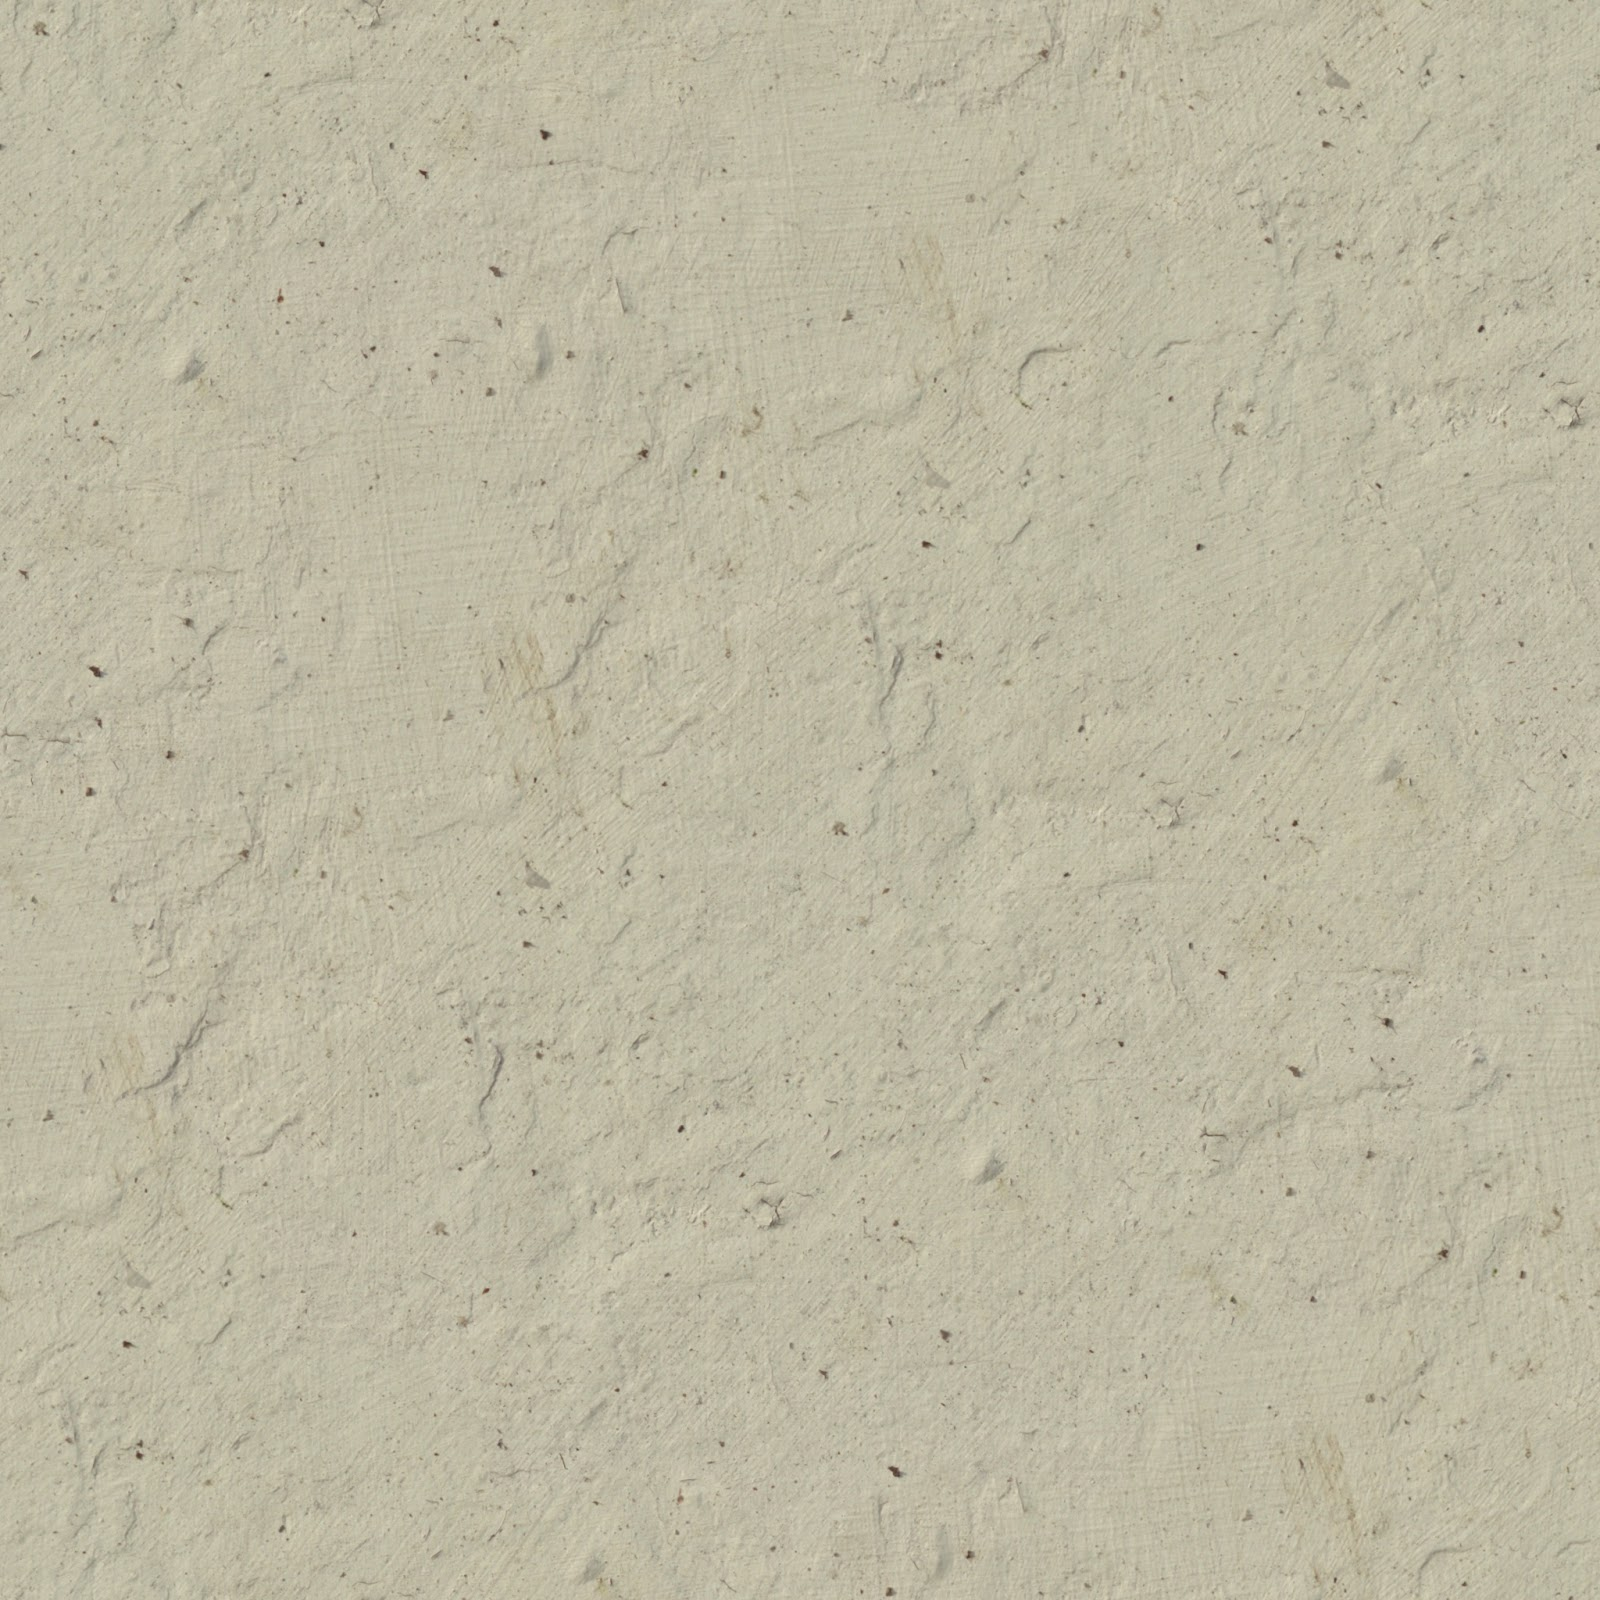 Stucco wall cream seamless texture 2048x2048